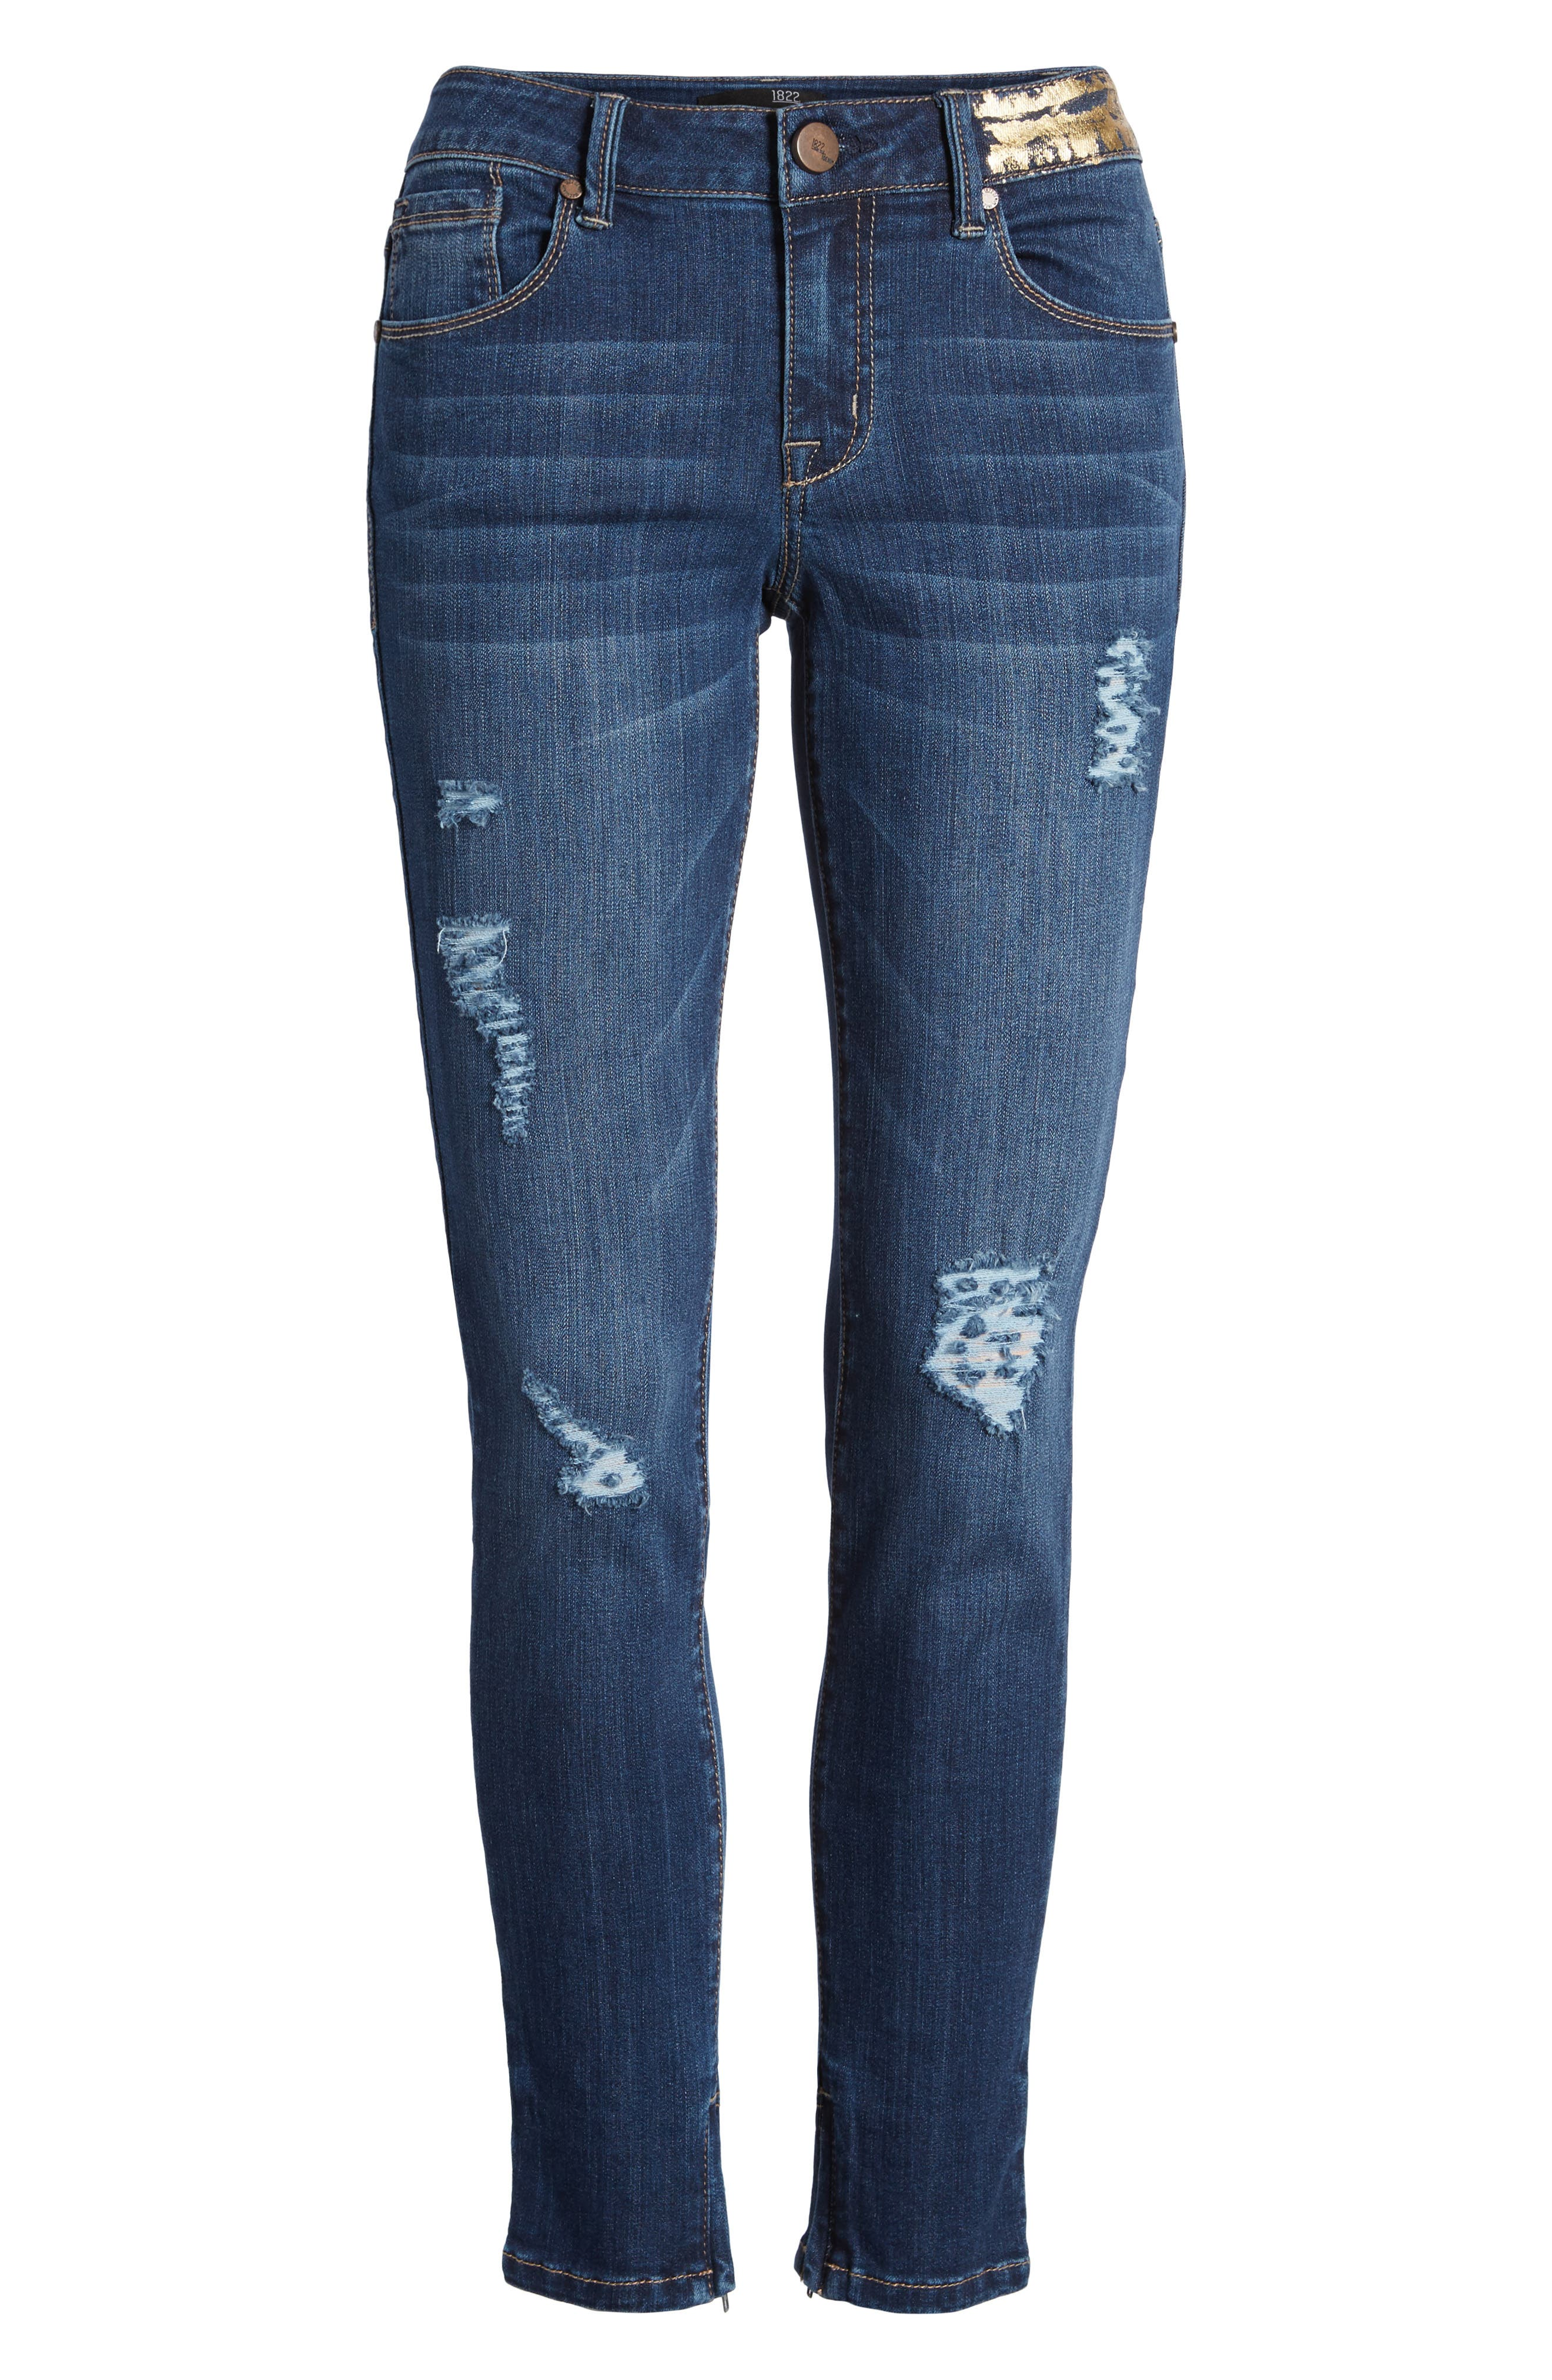 Gold Waist Ankle Zip Skinny Jeans,                             Alternate thumbnail 7, color,                             Janes Addiction Med Wash